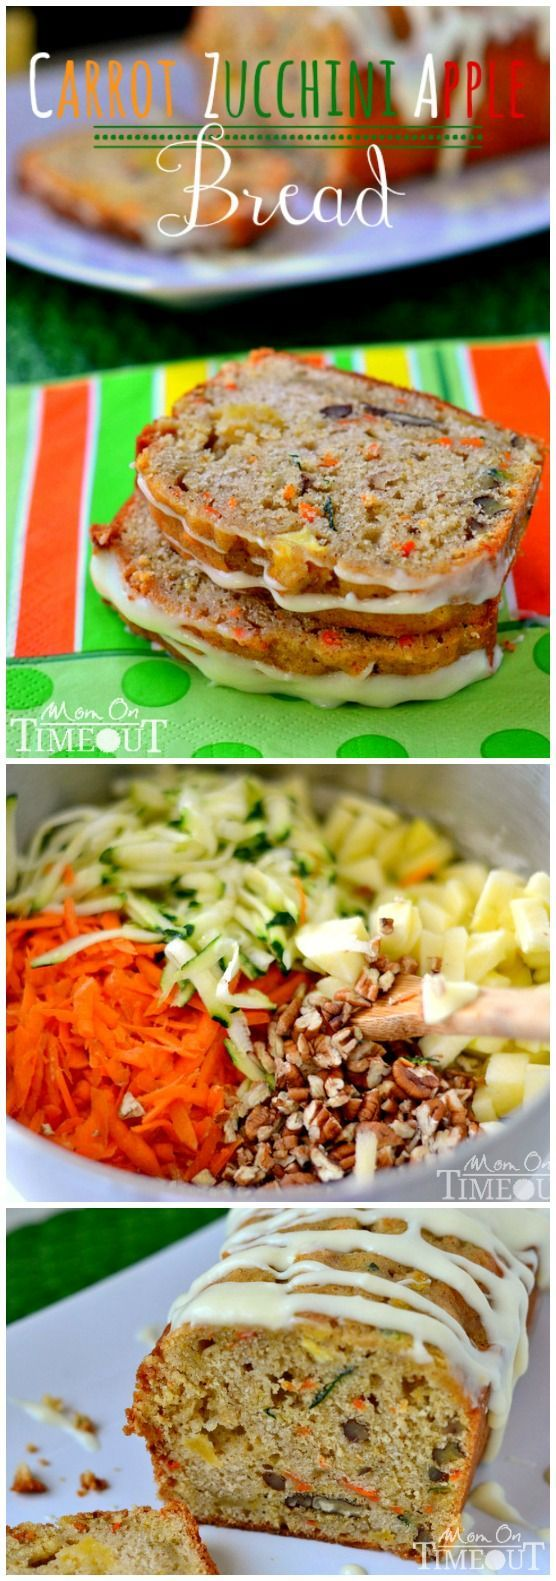 """This easy recipe for Carrot Zucchini Apple Bread is both delicious and healthy! Kind of a """"kitchen sink"""" of ingredients that combine for the most amazing flavor. A great way to use up extras.   Mom On Timeout"""